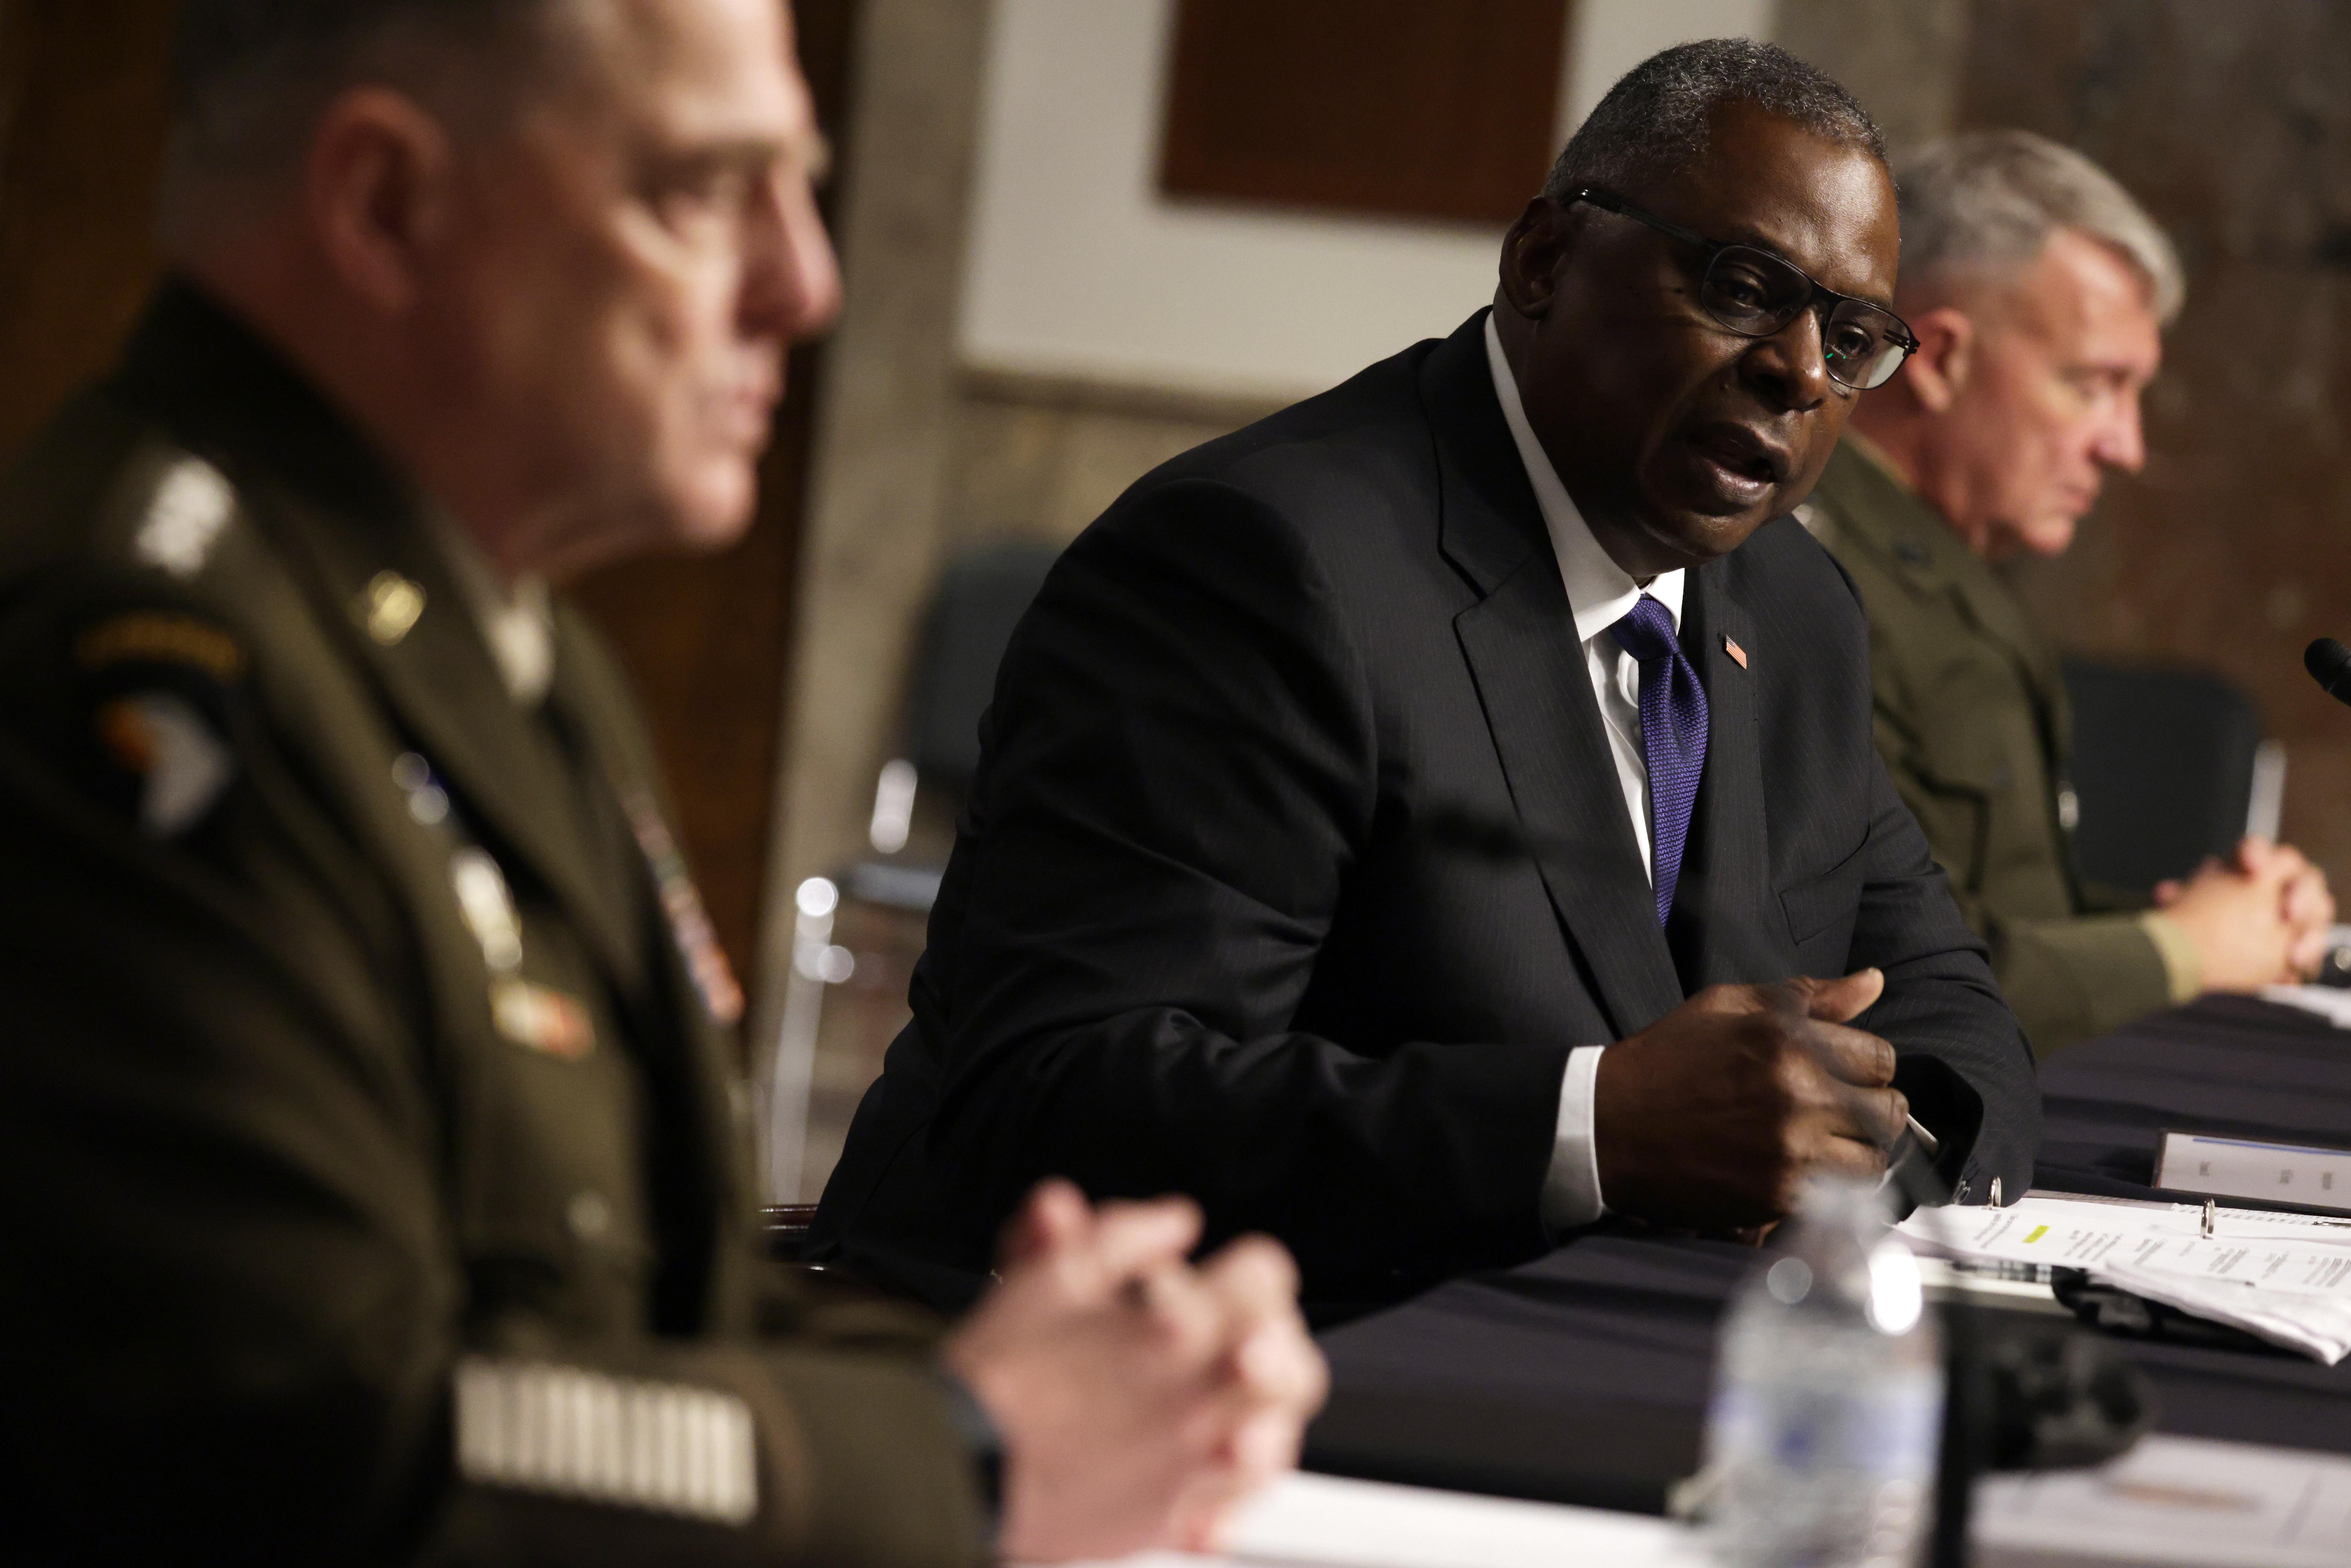 U.S. Secretary of Defense Lloyd Austin (center), Chairman of the Joint Chiefs of Staff Gen. Mark Milley (left) and Commander of U.S. Central Command Gen. Kenneth McKenzie (right) testify during a hearing before Senate Armed Services Committee at Dirksen Senate Office Building September 28, 2021 on Capitol Hill in Washington, DC. (Photo by Alex Wong/Getty Images)